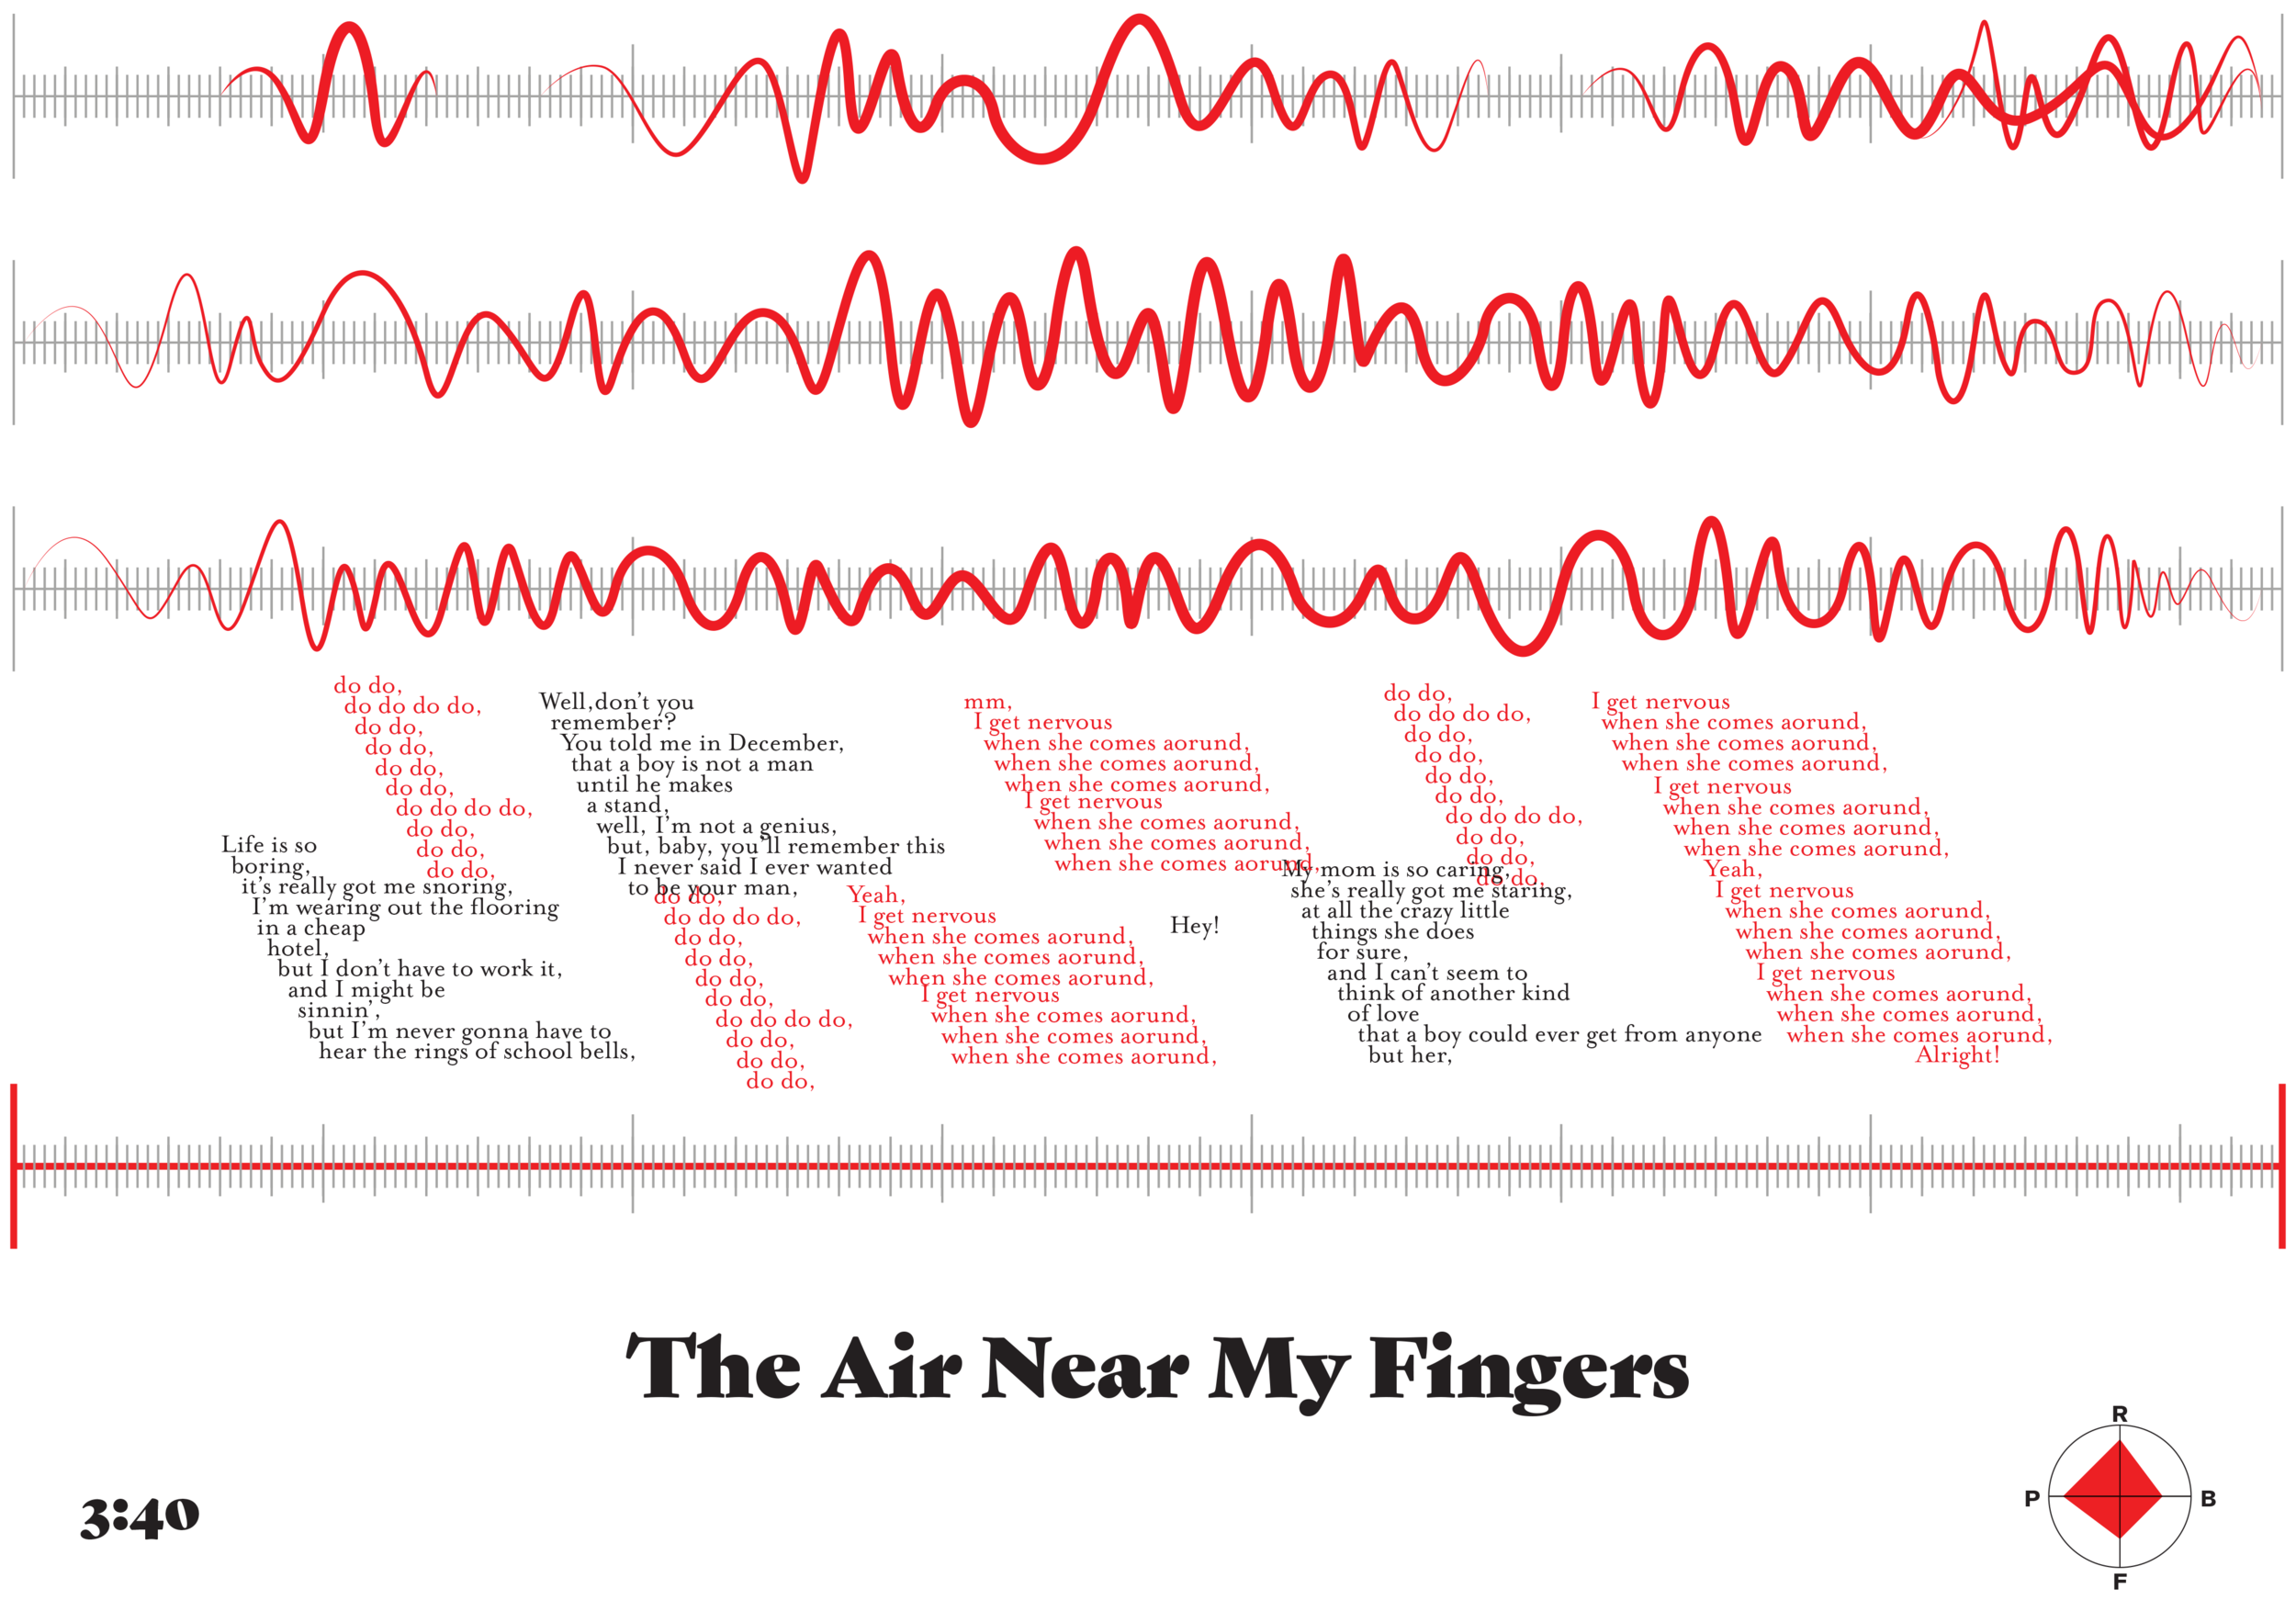 12 - The Air Near My Fingers.png